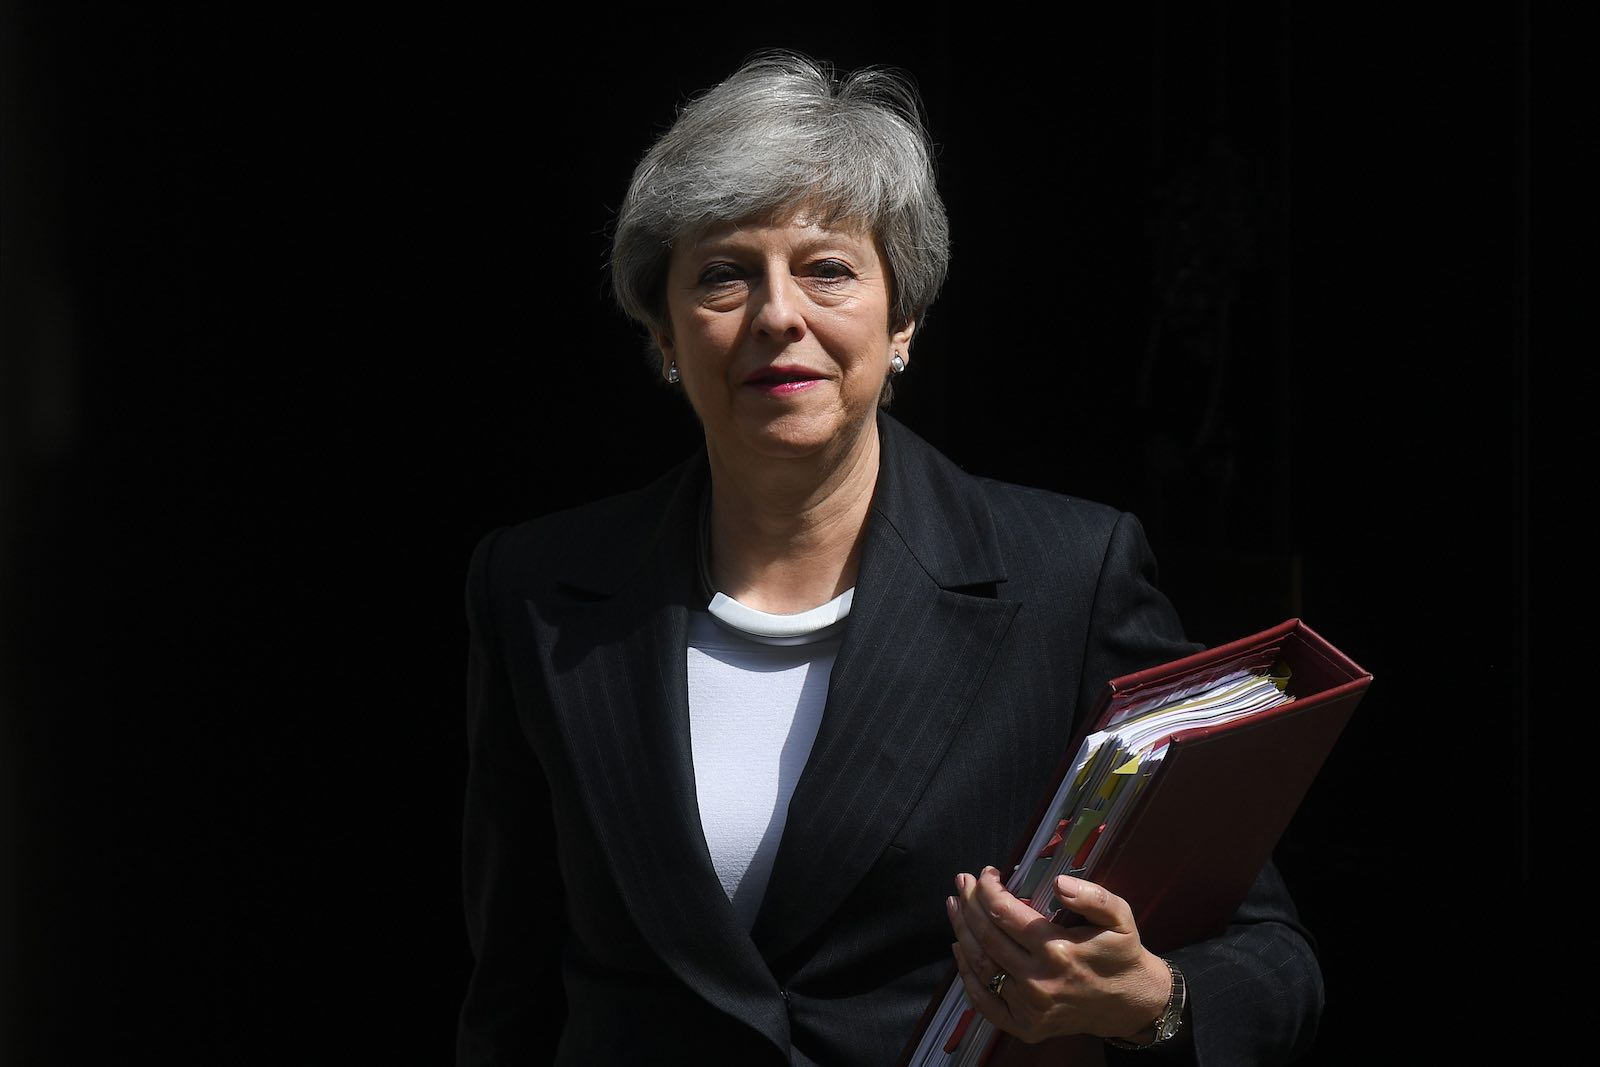 Theresa May's strategy was always to deny there was any alternative to her deal (Photo: Daniel Leal-Olivas via Getty)